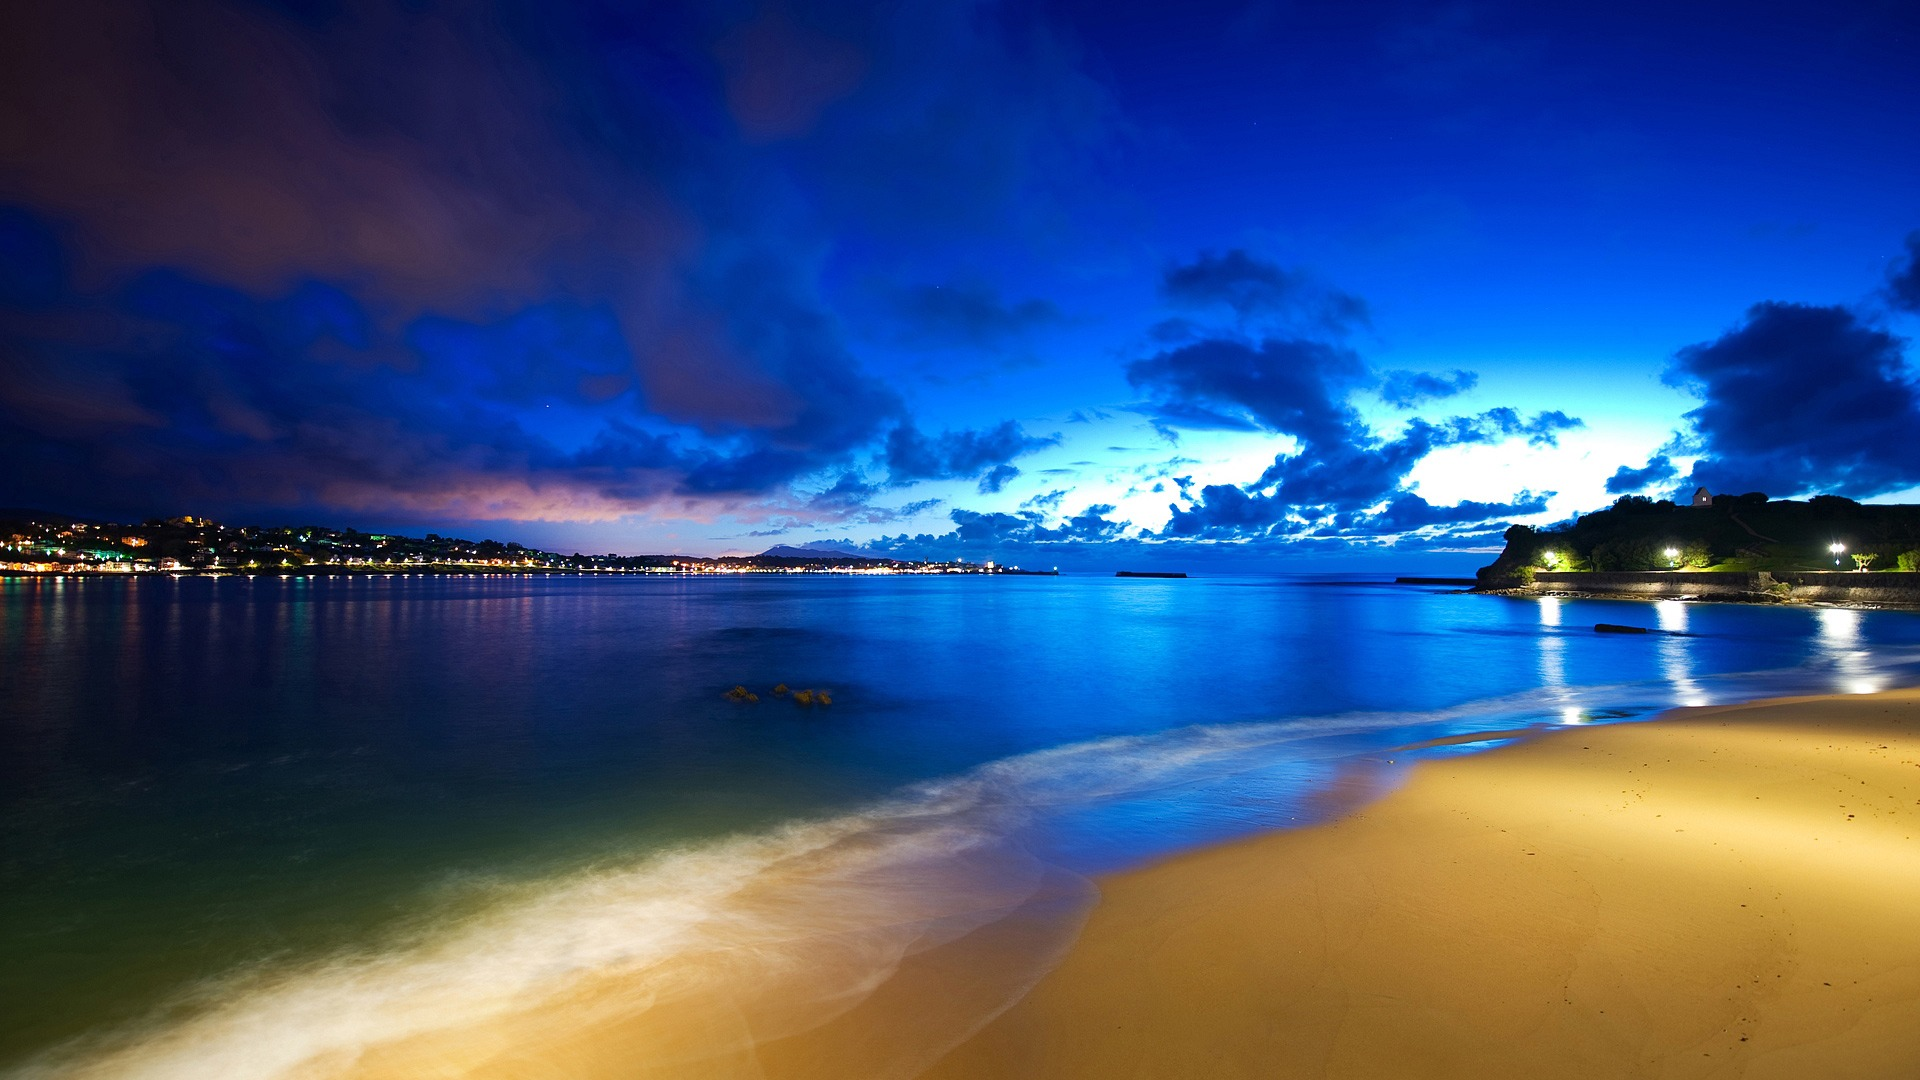 Cool Beach HD Desktop Wallpapers Background Images 8455 HD 1920x1080